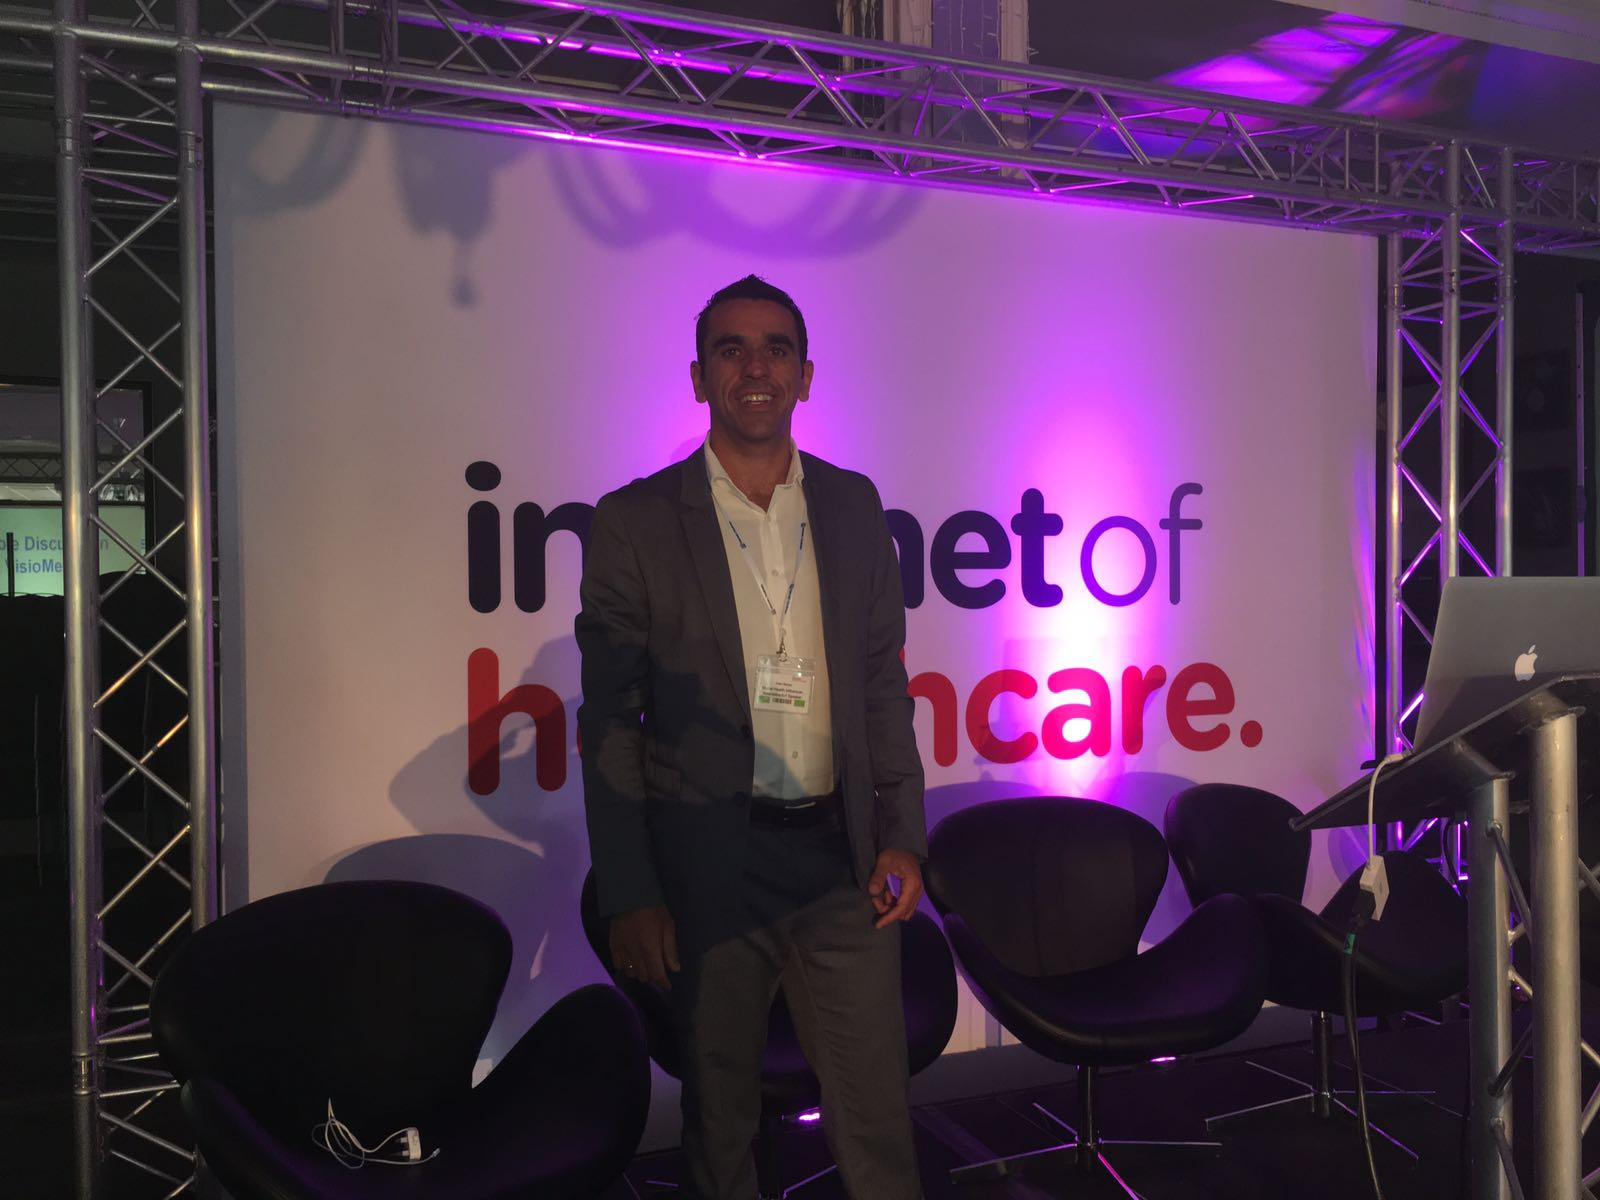 Internet of Healthcare Conference